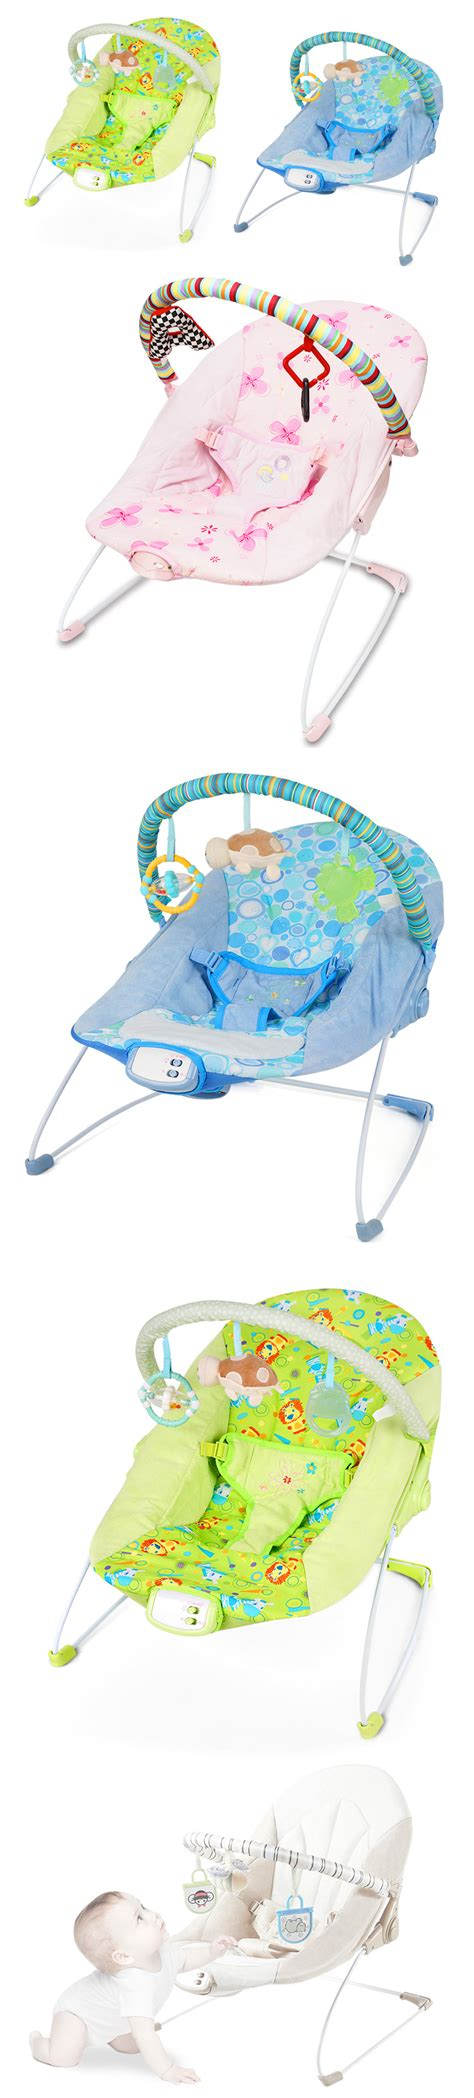 baby swing singapore babygogo com sg infant swing